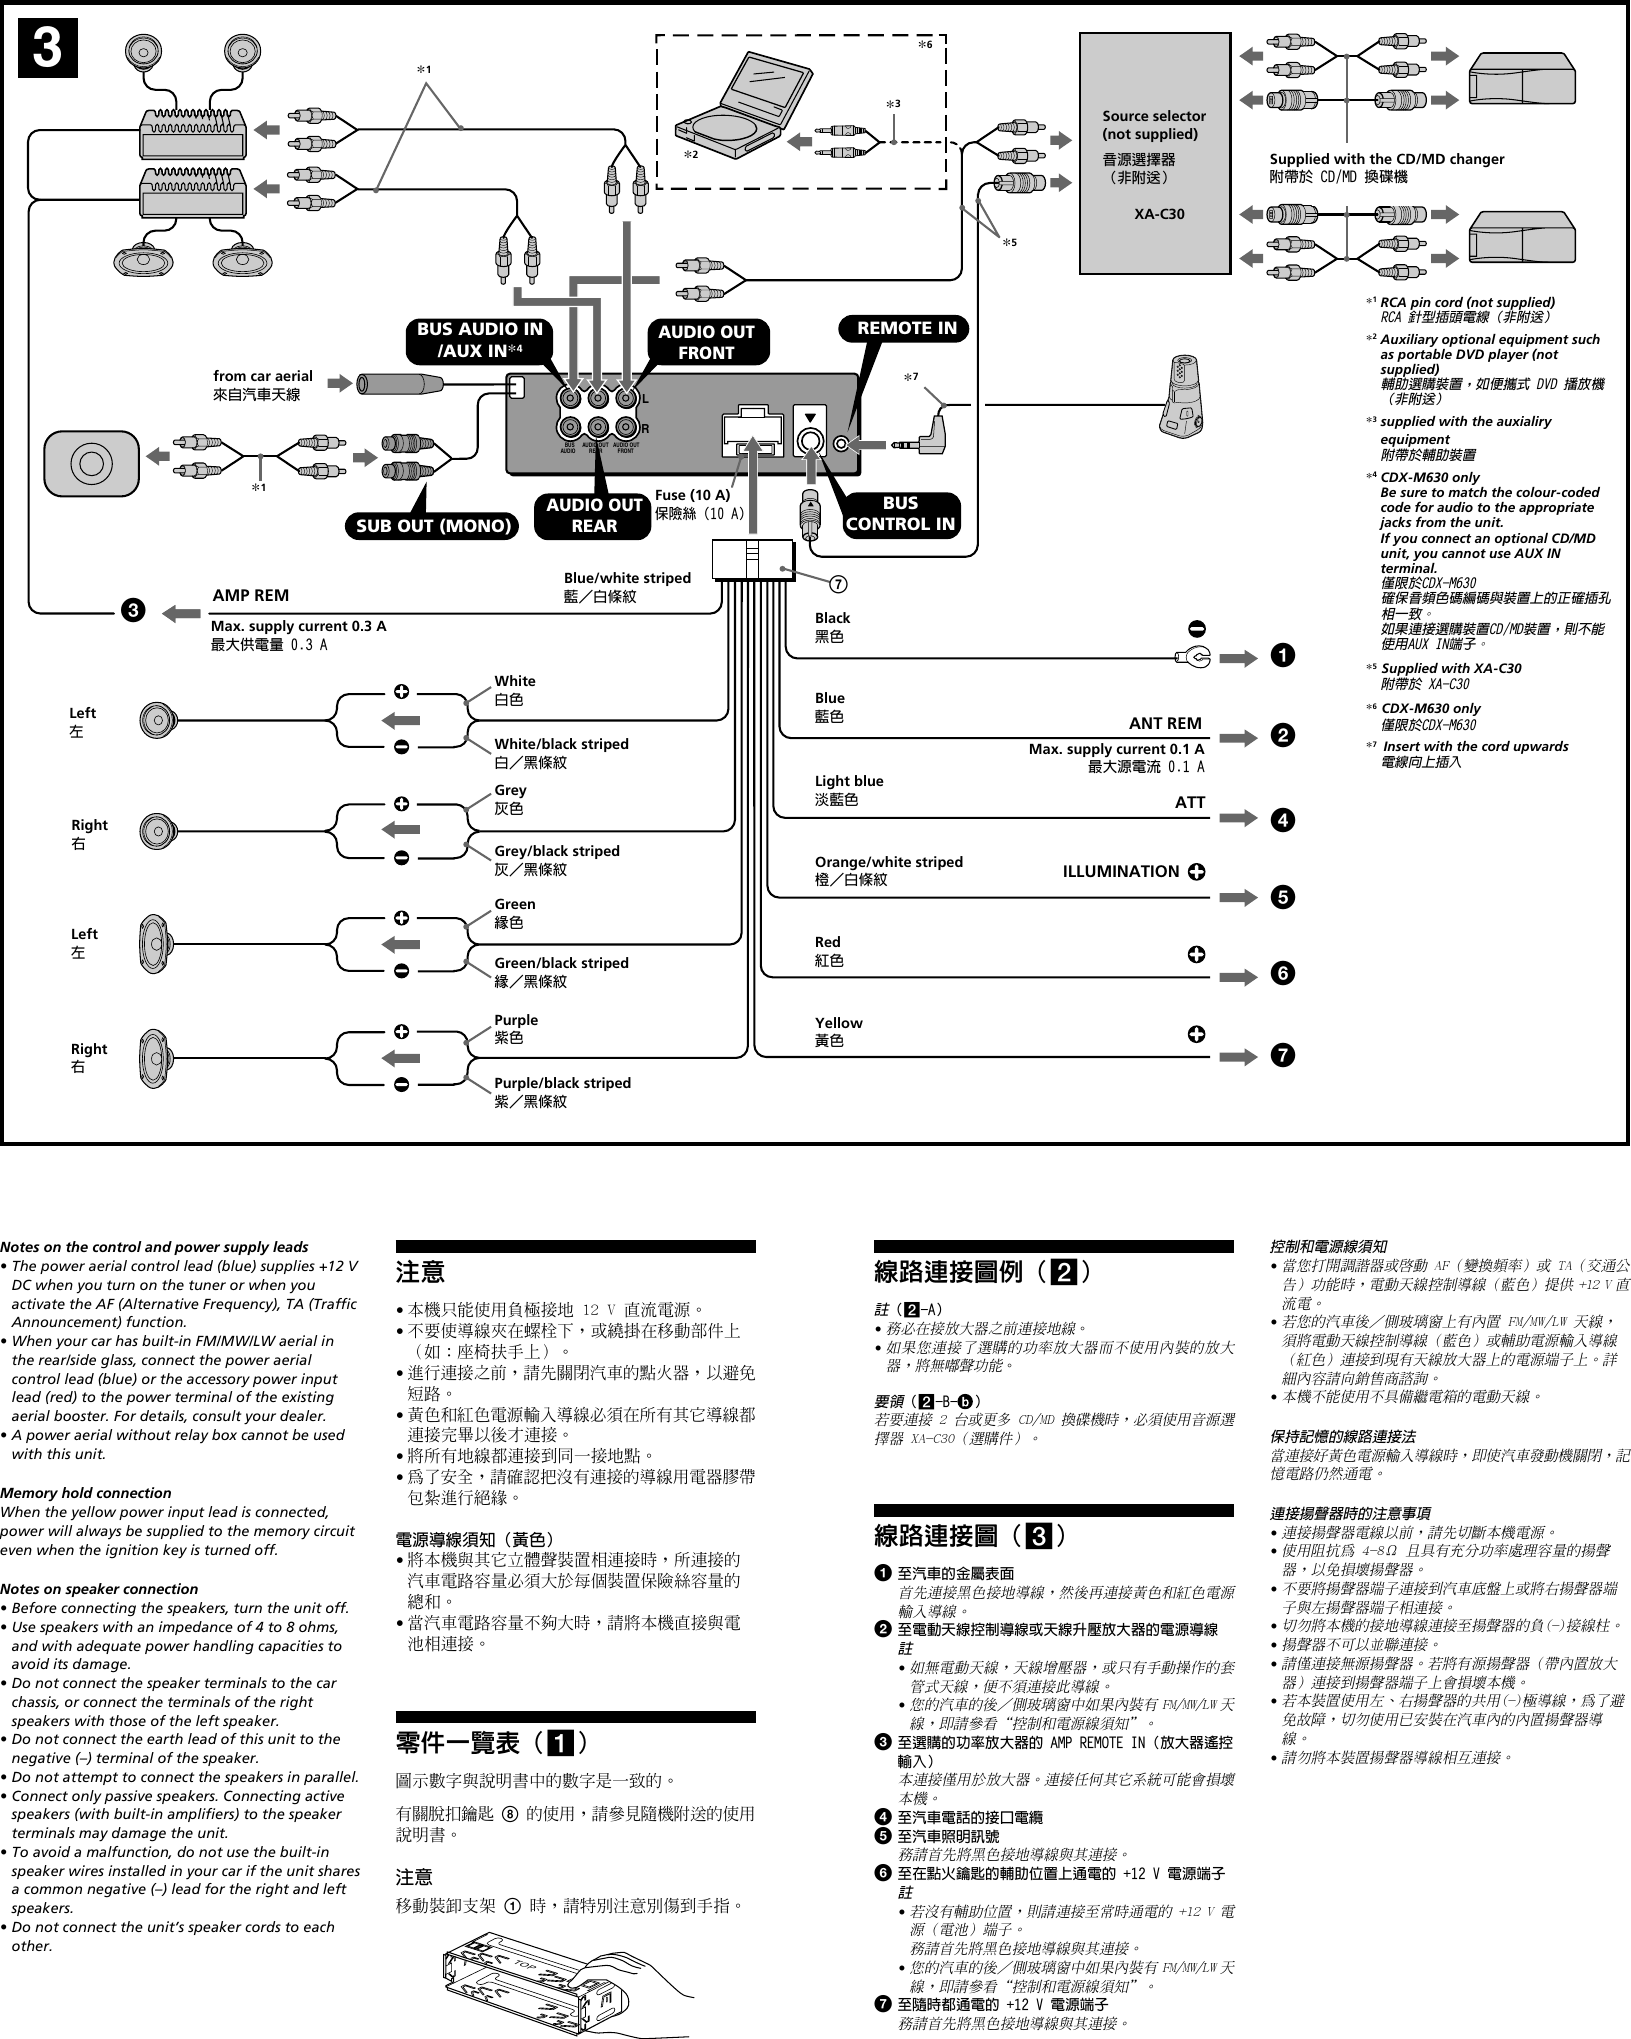 DIAGRAM] Wiring Diagram Sony Cdx M630 FULL Version HD Quality Cdx M630 -  PHASECHANGEDIAGRAM.CAPLEVAT.ITWiring And Fuse Image